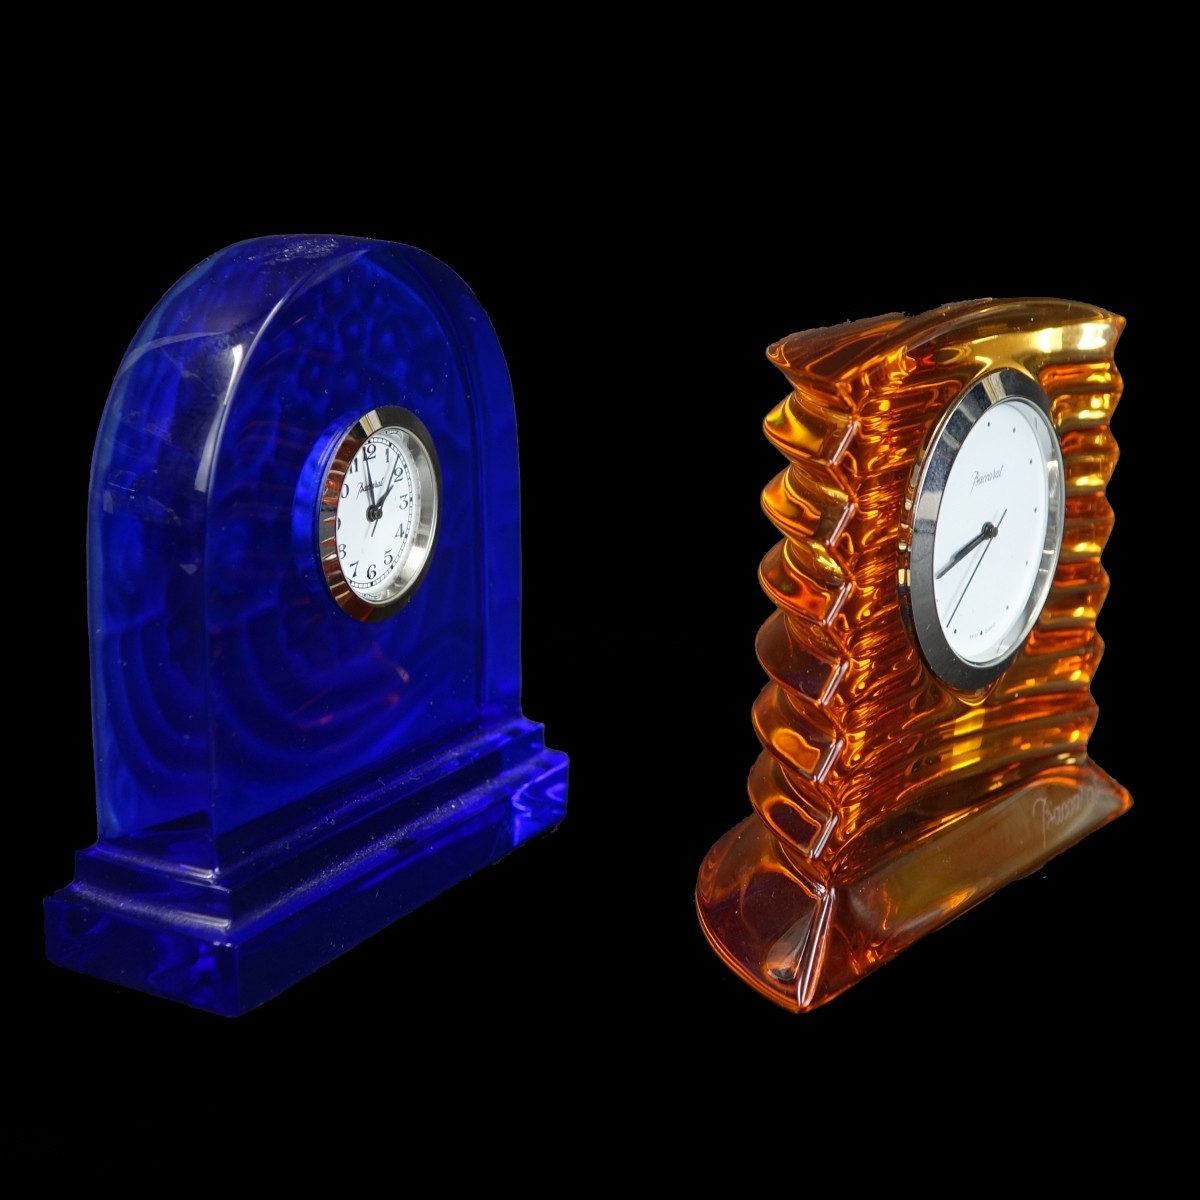 Two (2) Baccarat Miniature Crystal Clocks